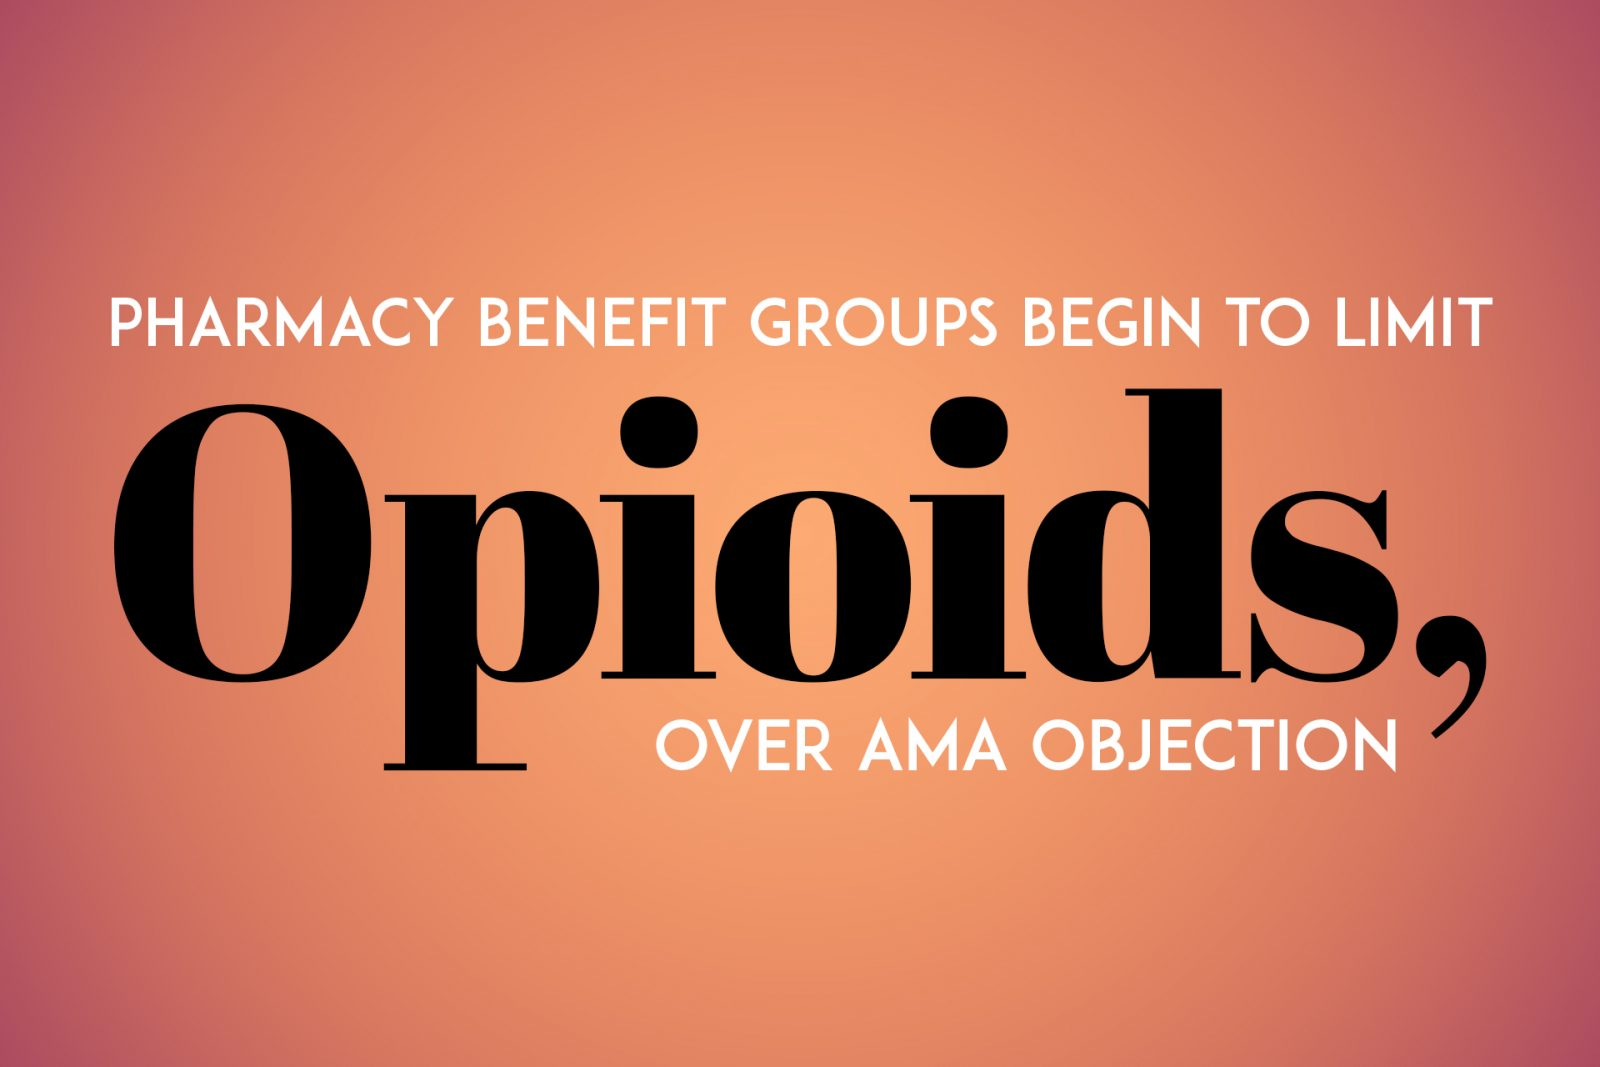 Pharmacy Benefit Groups Begin to Limit Opioids, Over AMA Objection